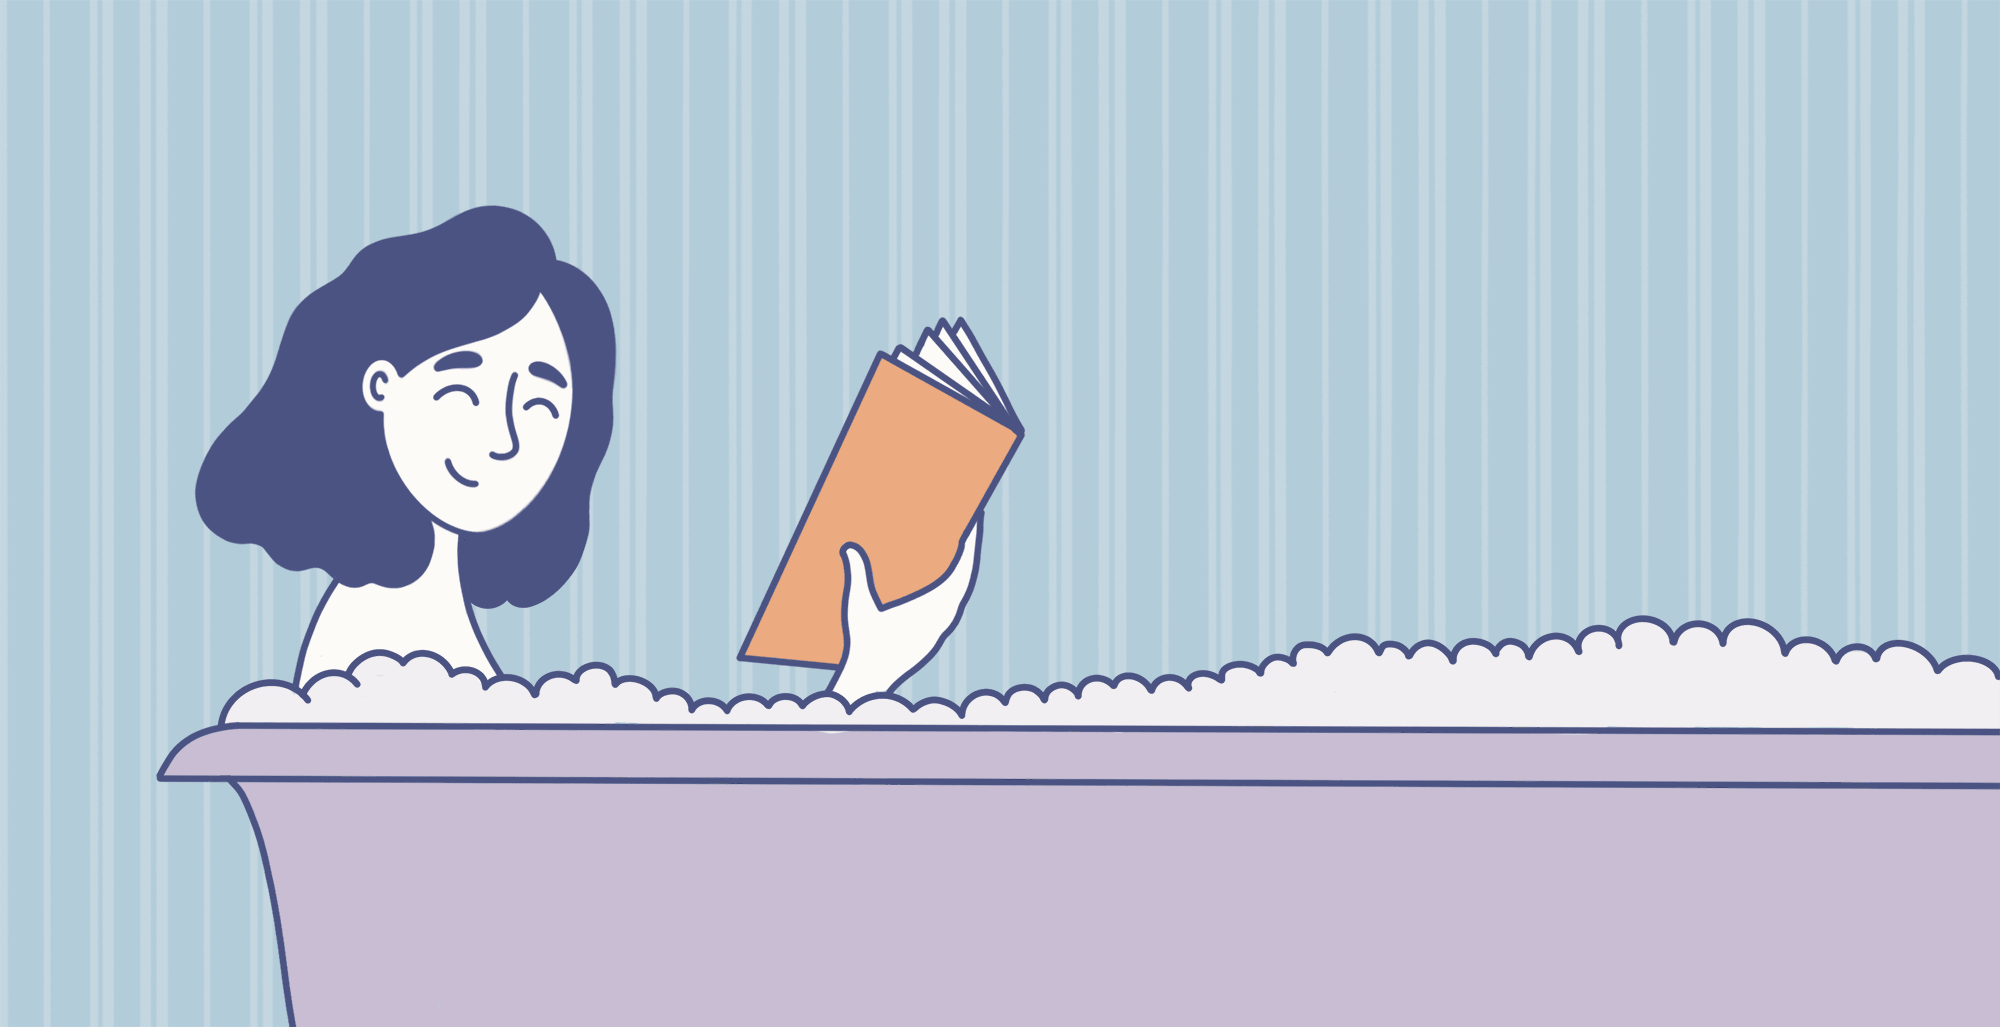 College Kid takes a bubble bath to soothe stress